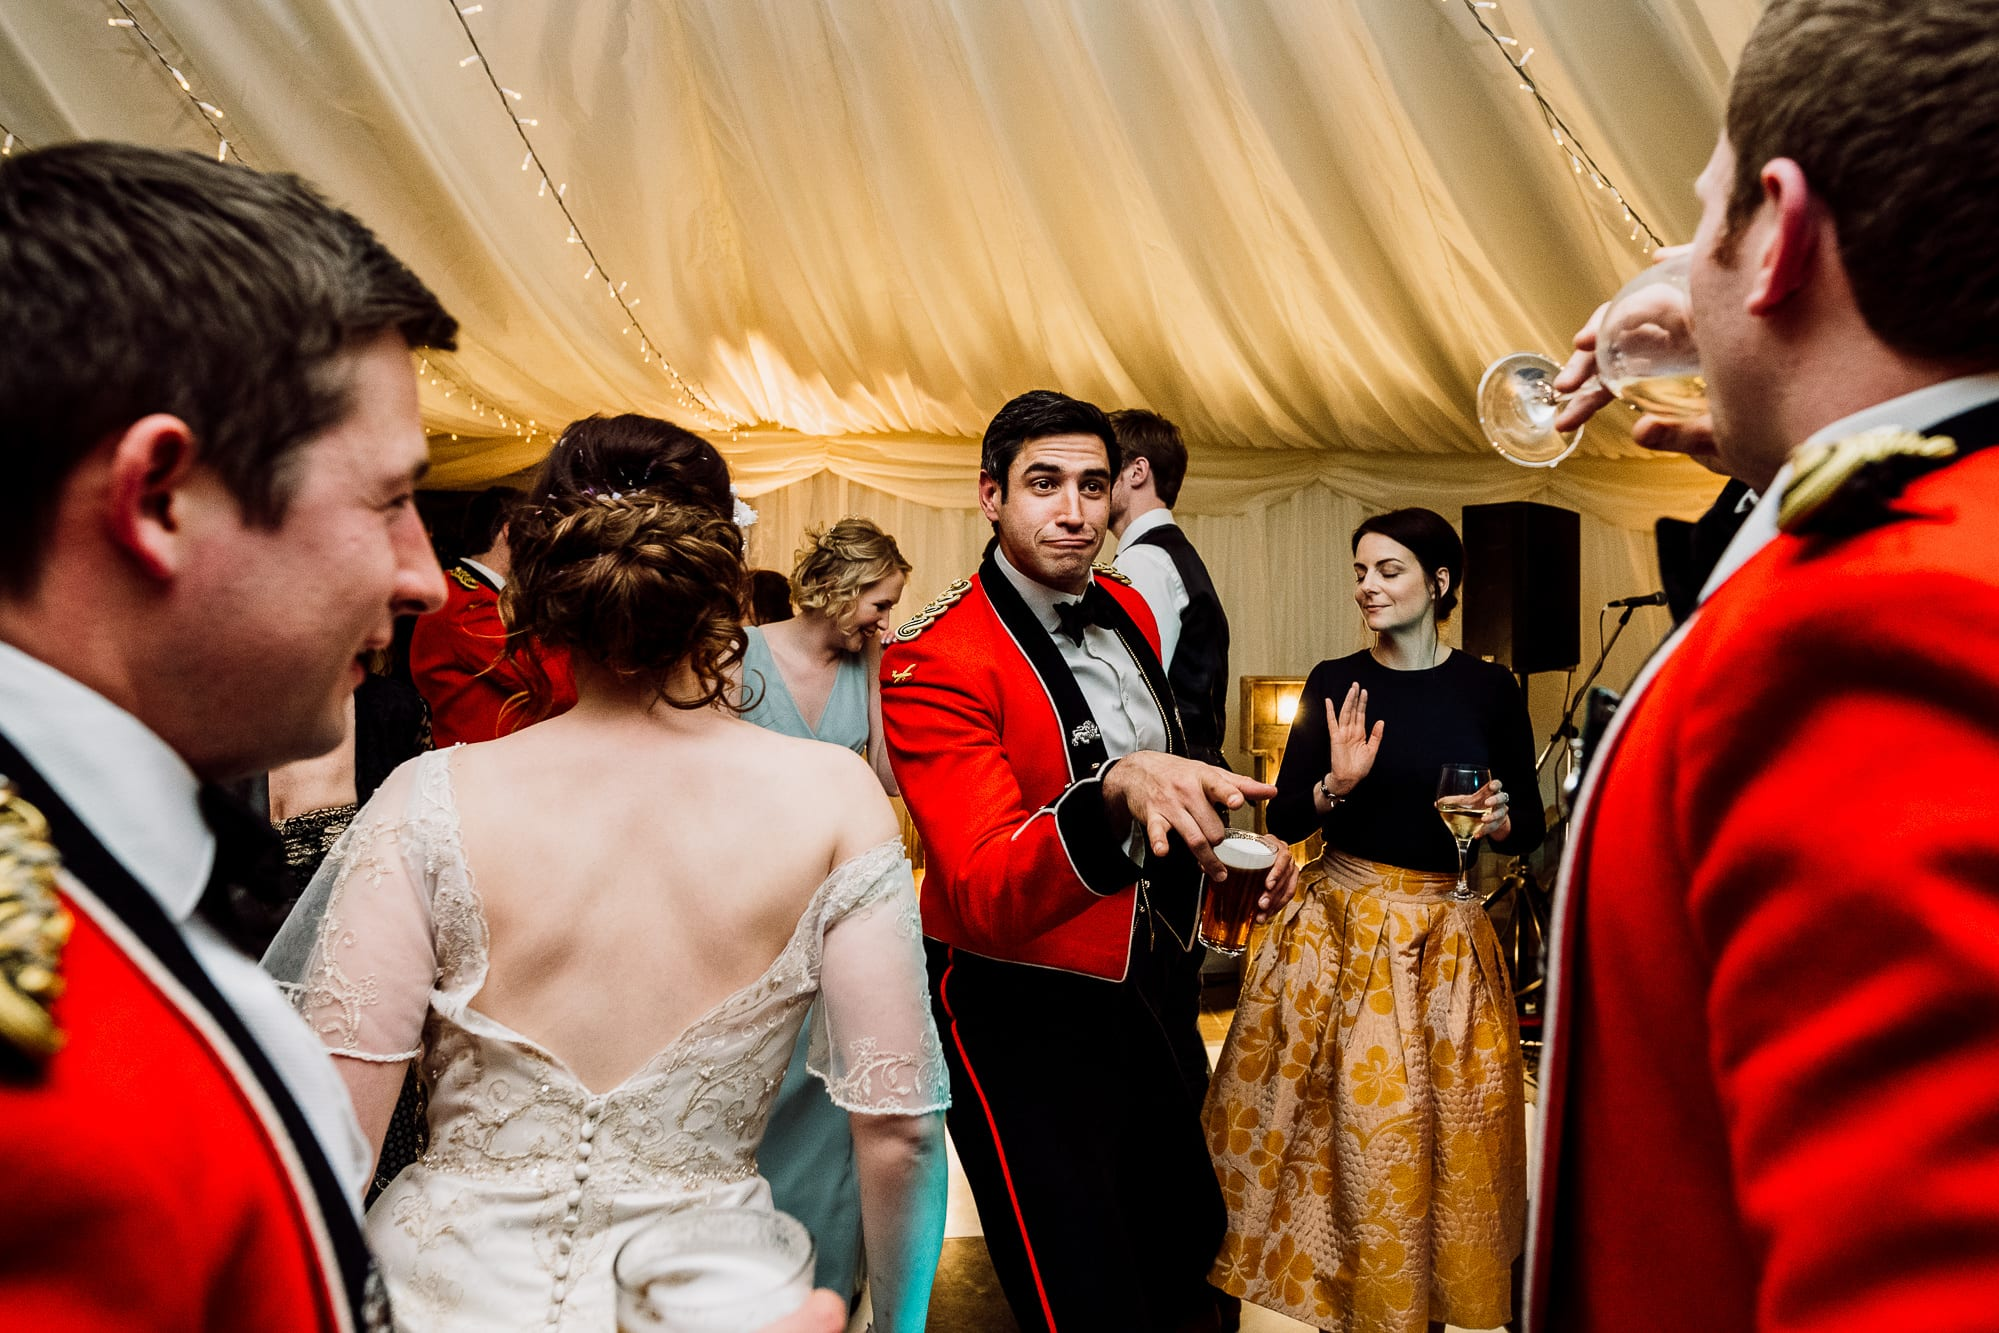 Guests dancing at the Inn at Whitewell